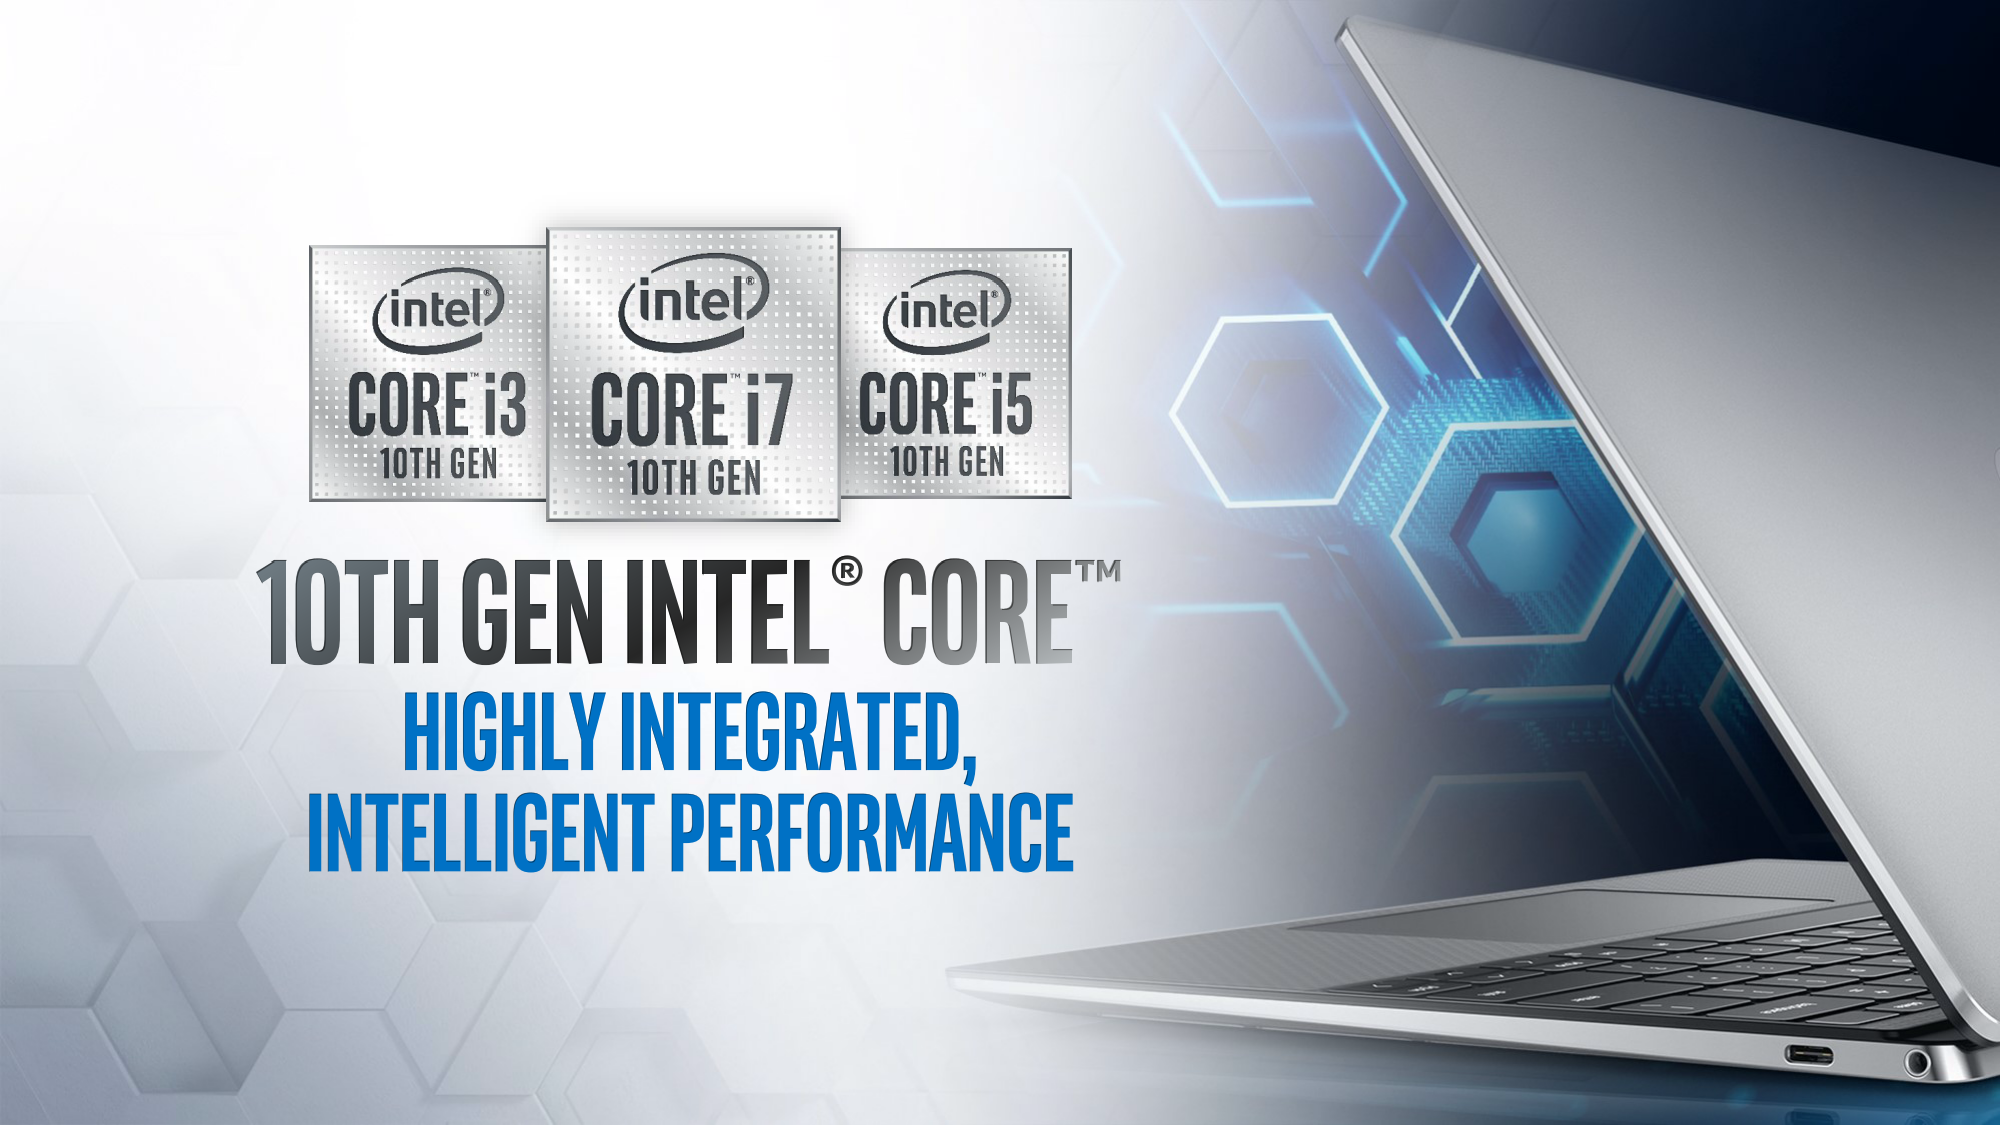 Gaming on 25 W Core i7-1065G7 Ice Lake-U can be up to 42